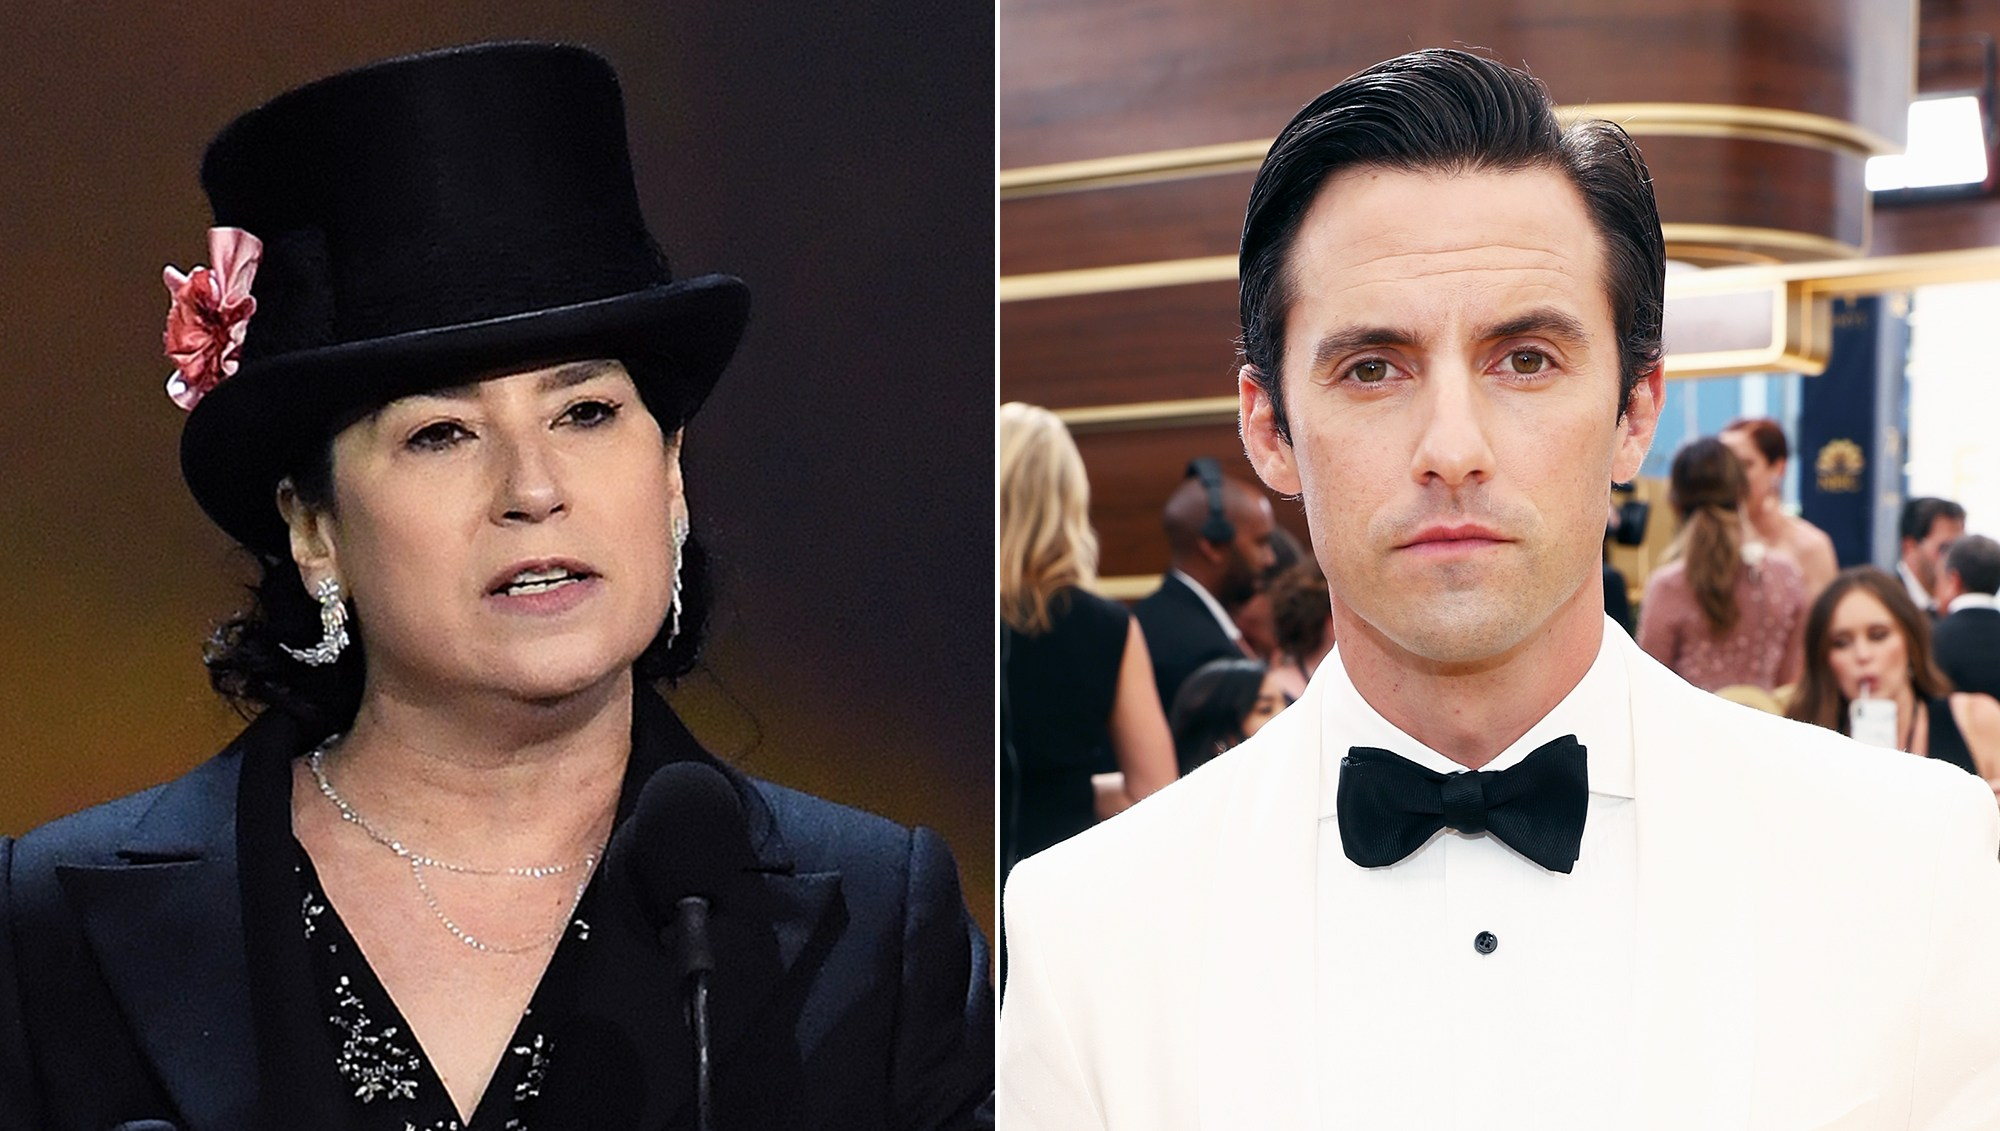 Emmys 2018: Amy Sherman-Palladino Raves About 'Gilmore Girls' Alum Milo Ventimiglia